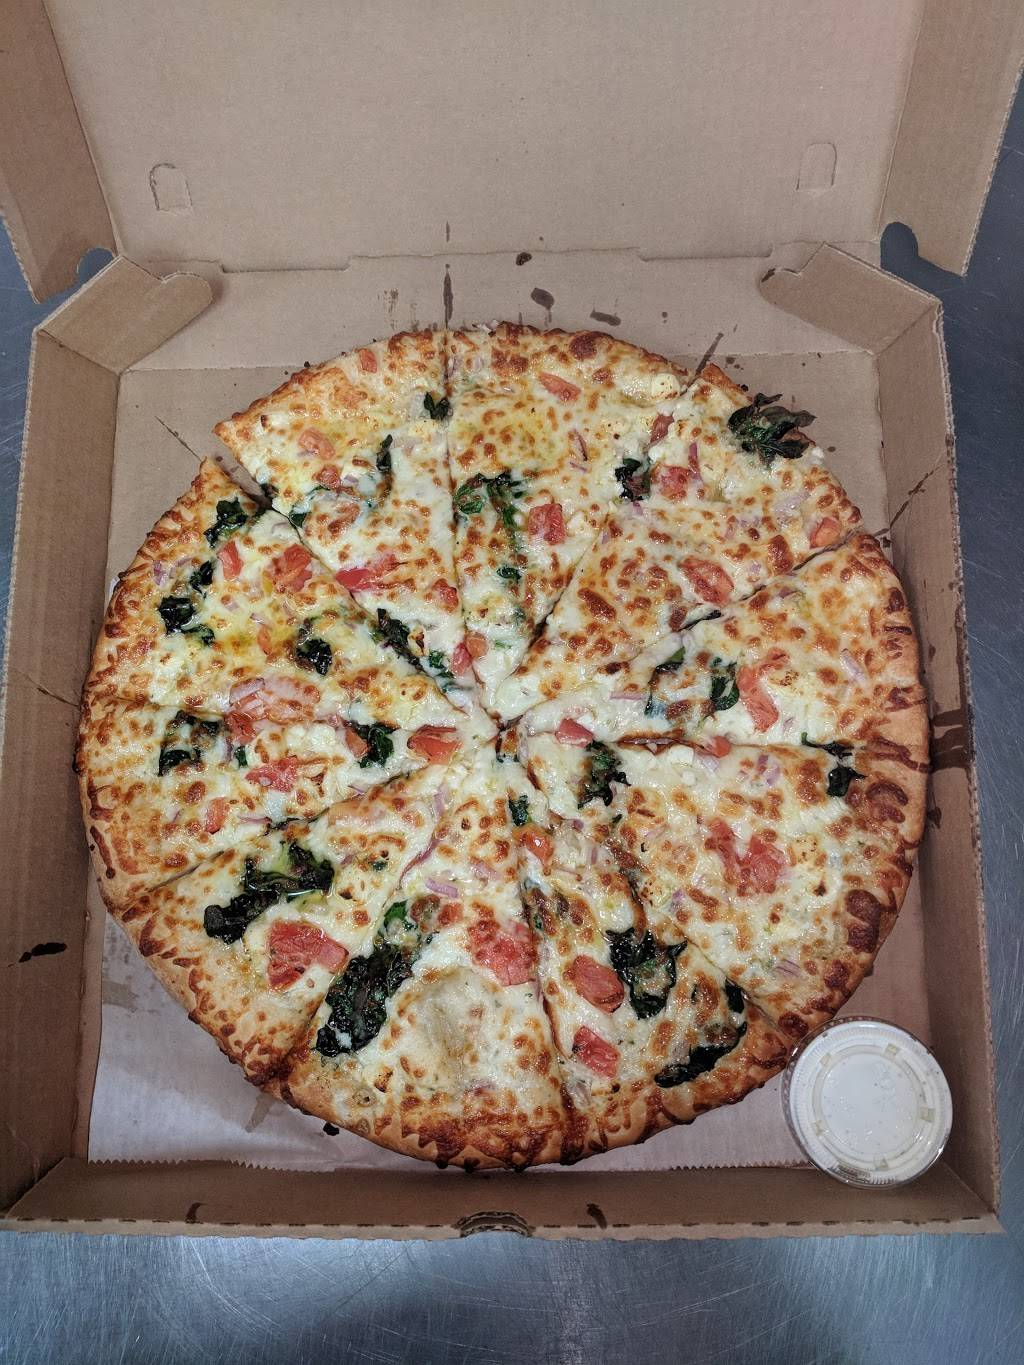 Marios Pizza House | meal delivery | 600 E Pittsburgh McKeesport Blvd, North Versailles, PA 15137, USA | 4126646006 OR +1 412-664-6006